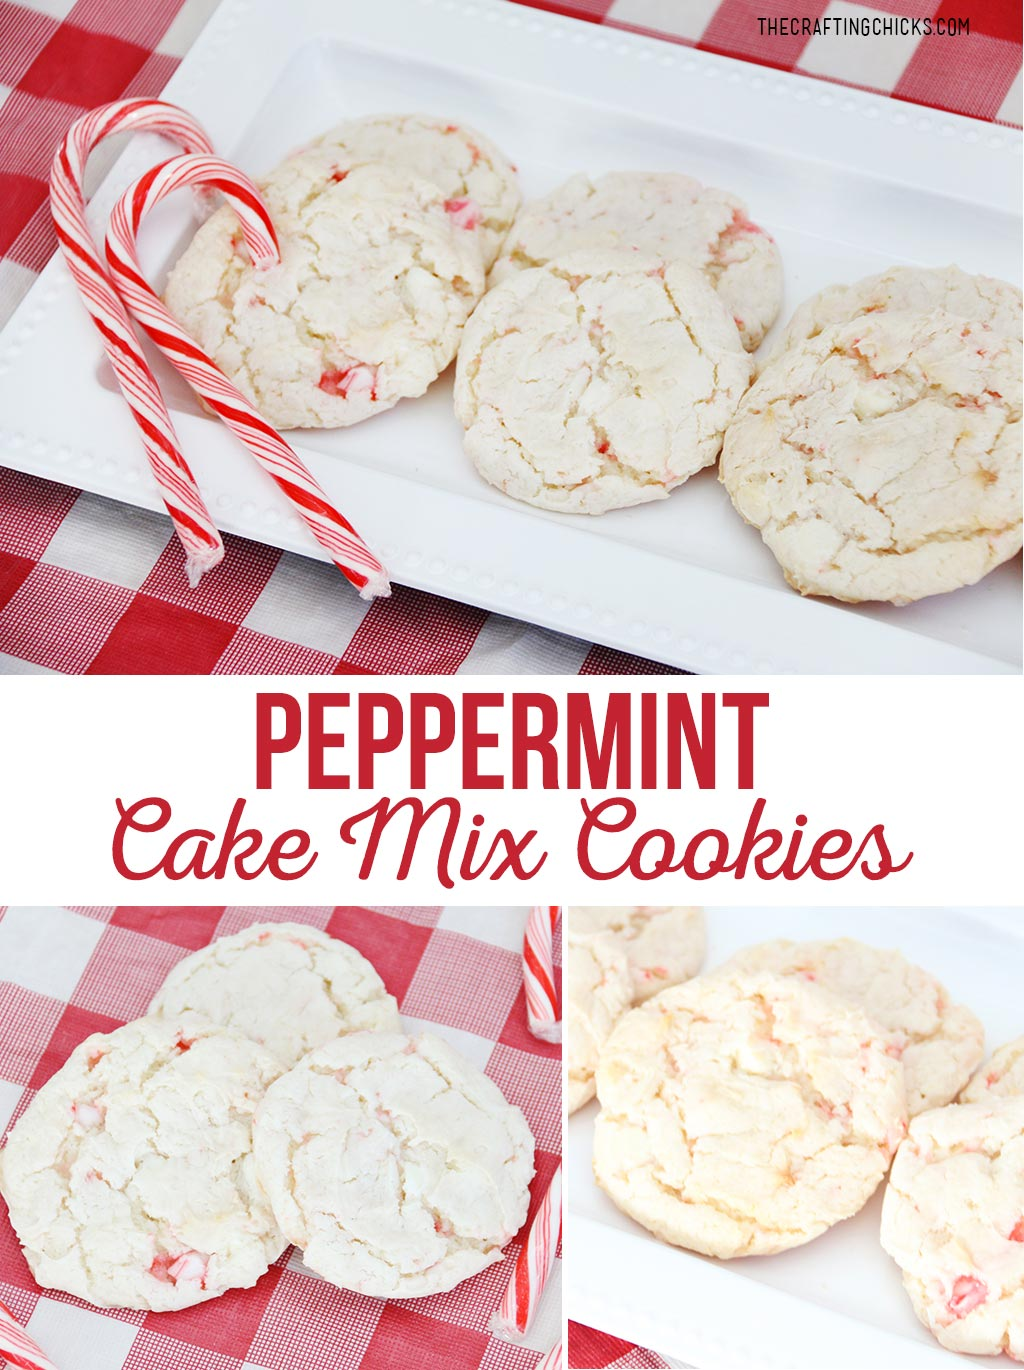 Peppermint Cake Mix Cookies Recipe